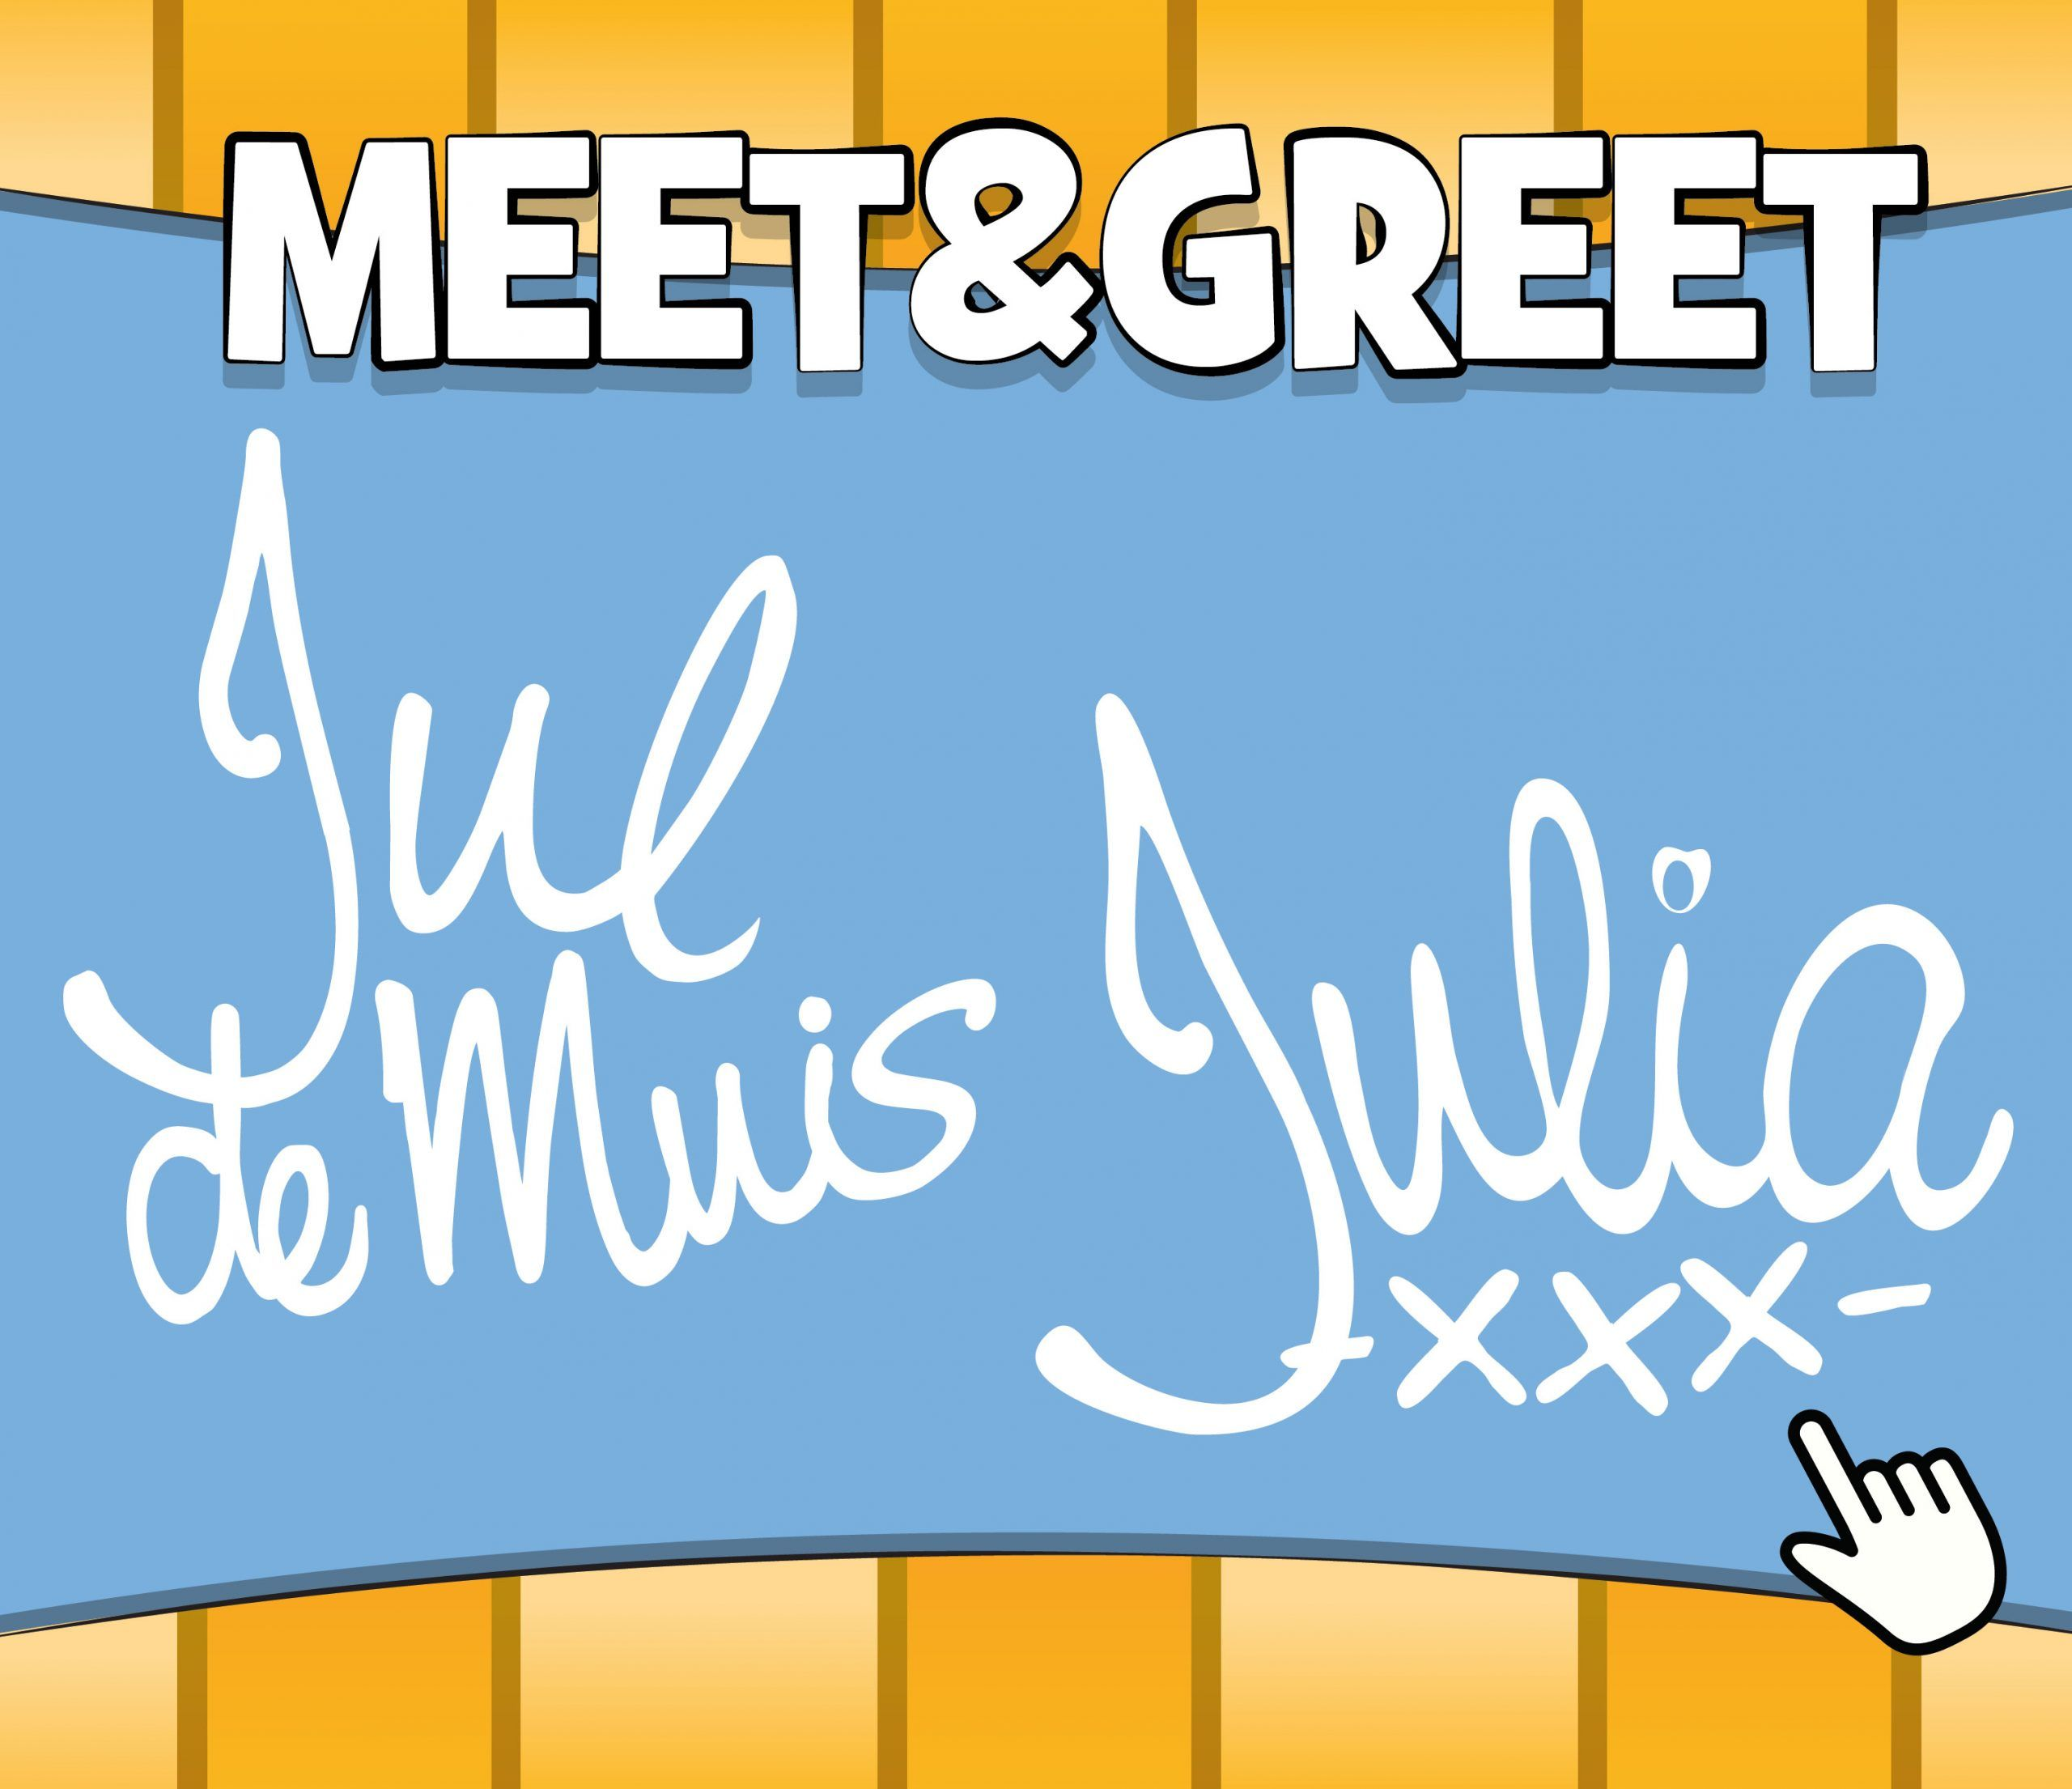 Meet & Greet Jul en Julia